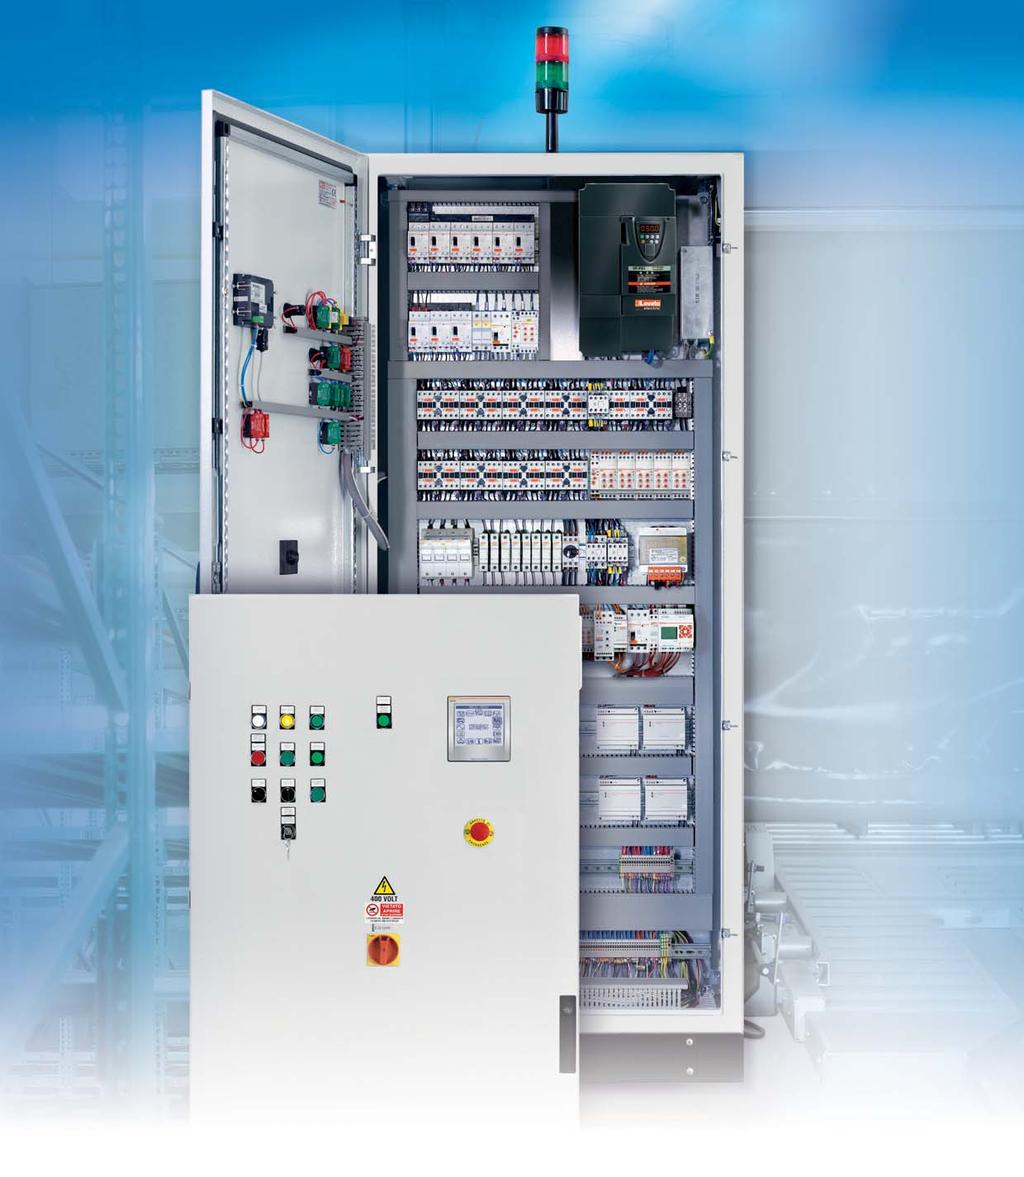 Products And Solutions For Machine Builders Oem Pdf Toshiba T300mvi Wiring Diagrams P R O D U C T S A N Signal Towers Beacons Motor Protection Circuit Breakers Relays Ac